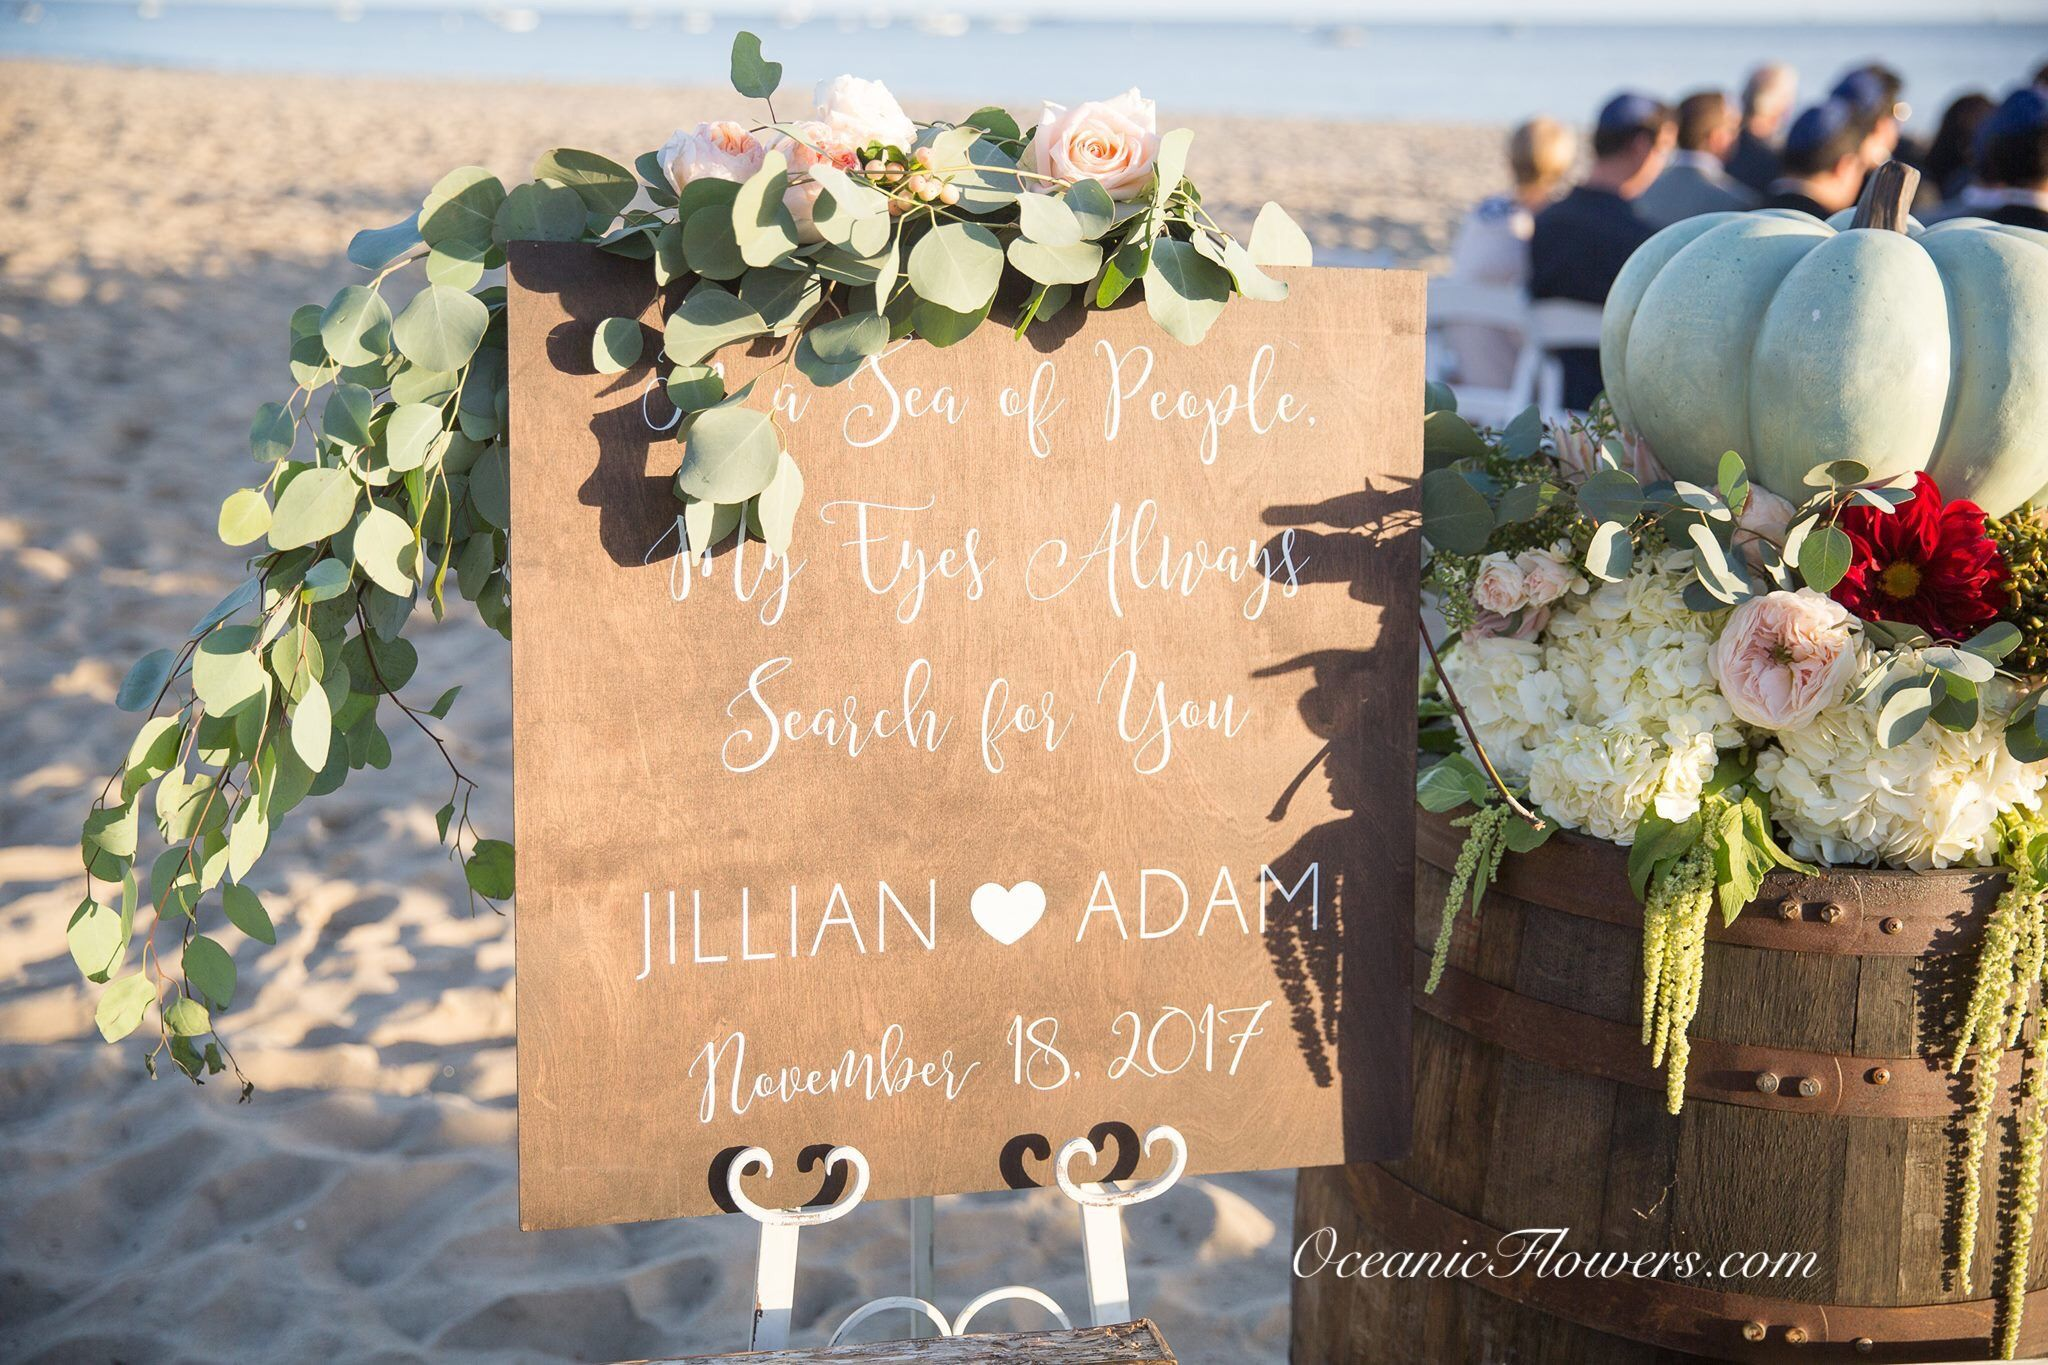 Pin by Oceanic Flowers on Ceremony Decorations  Pinterest